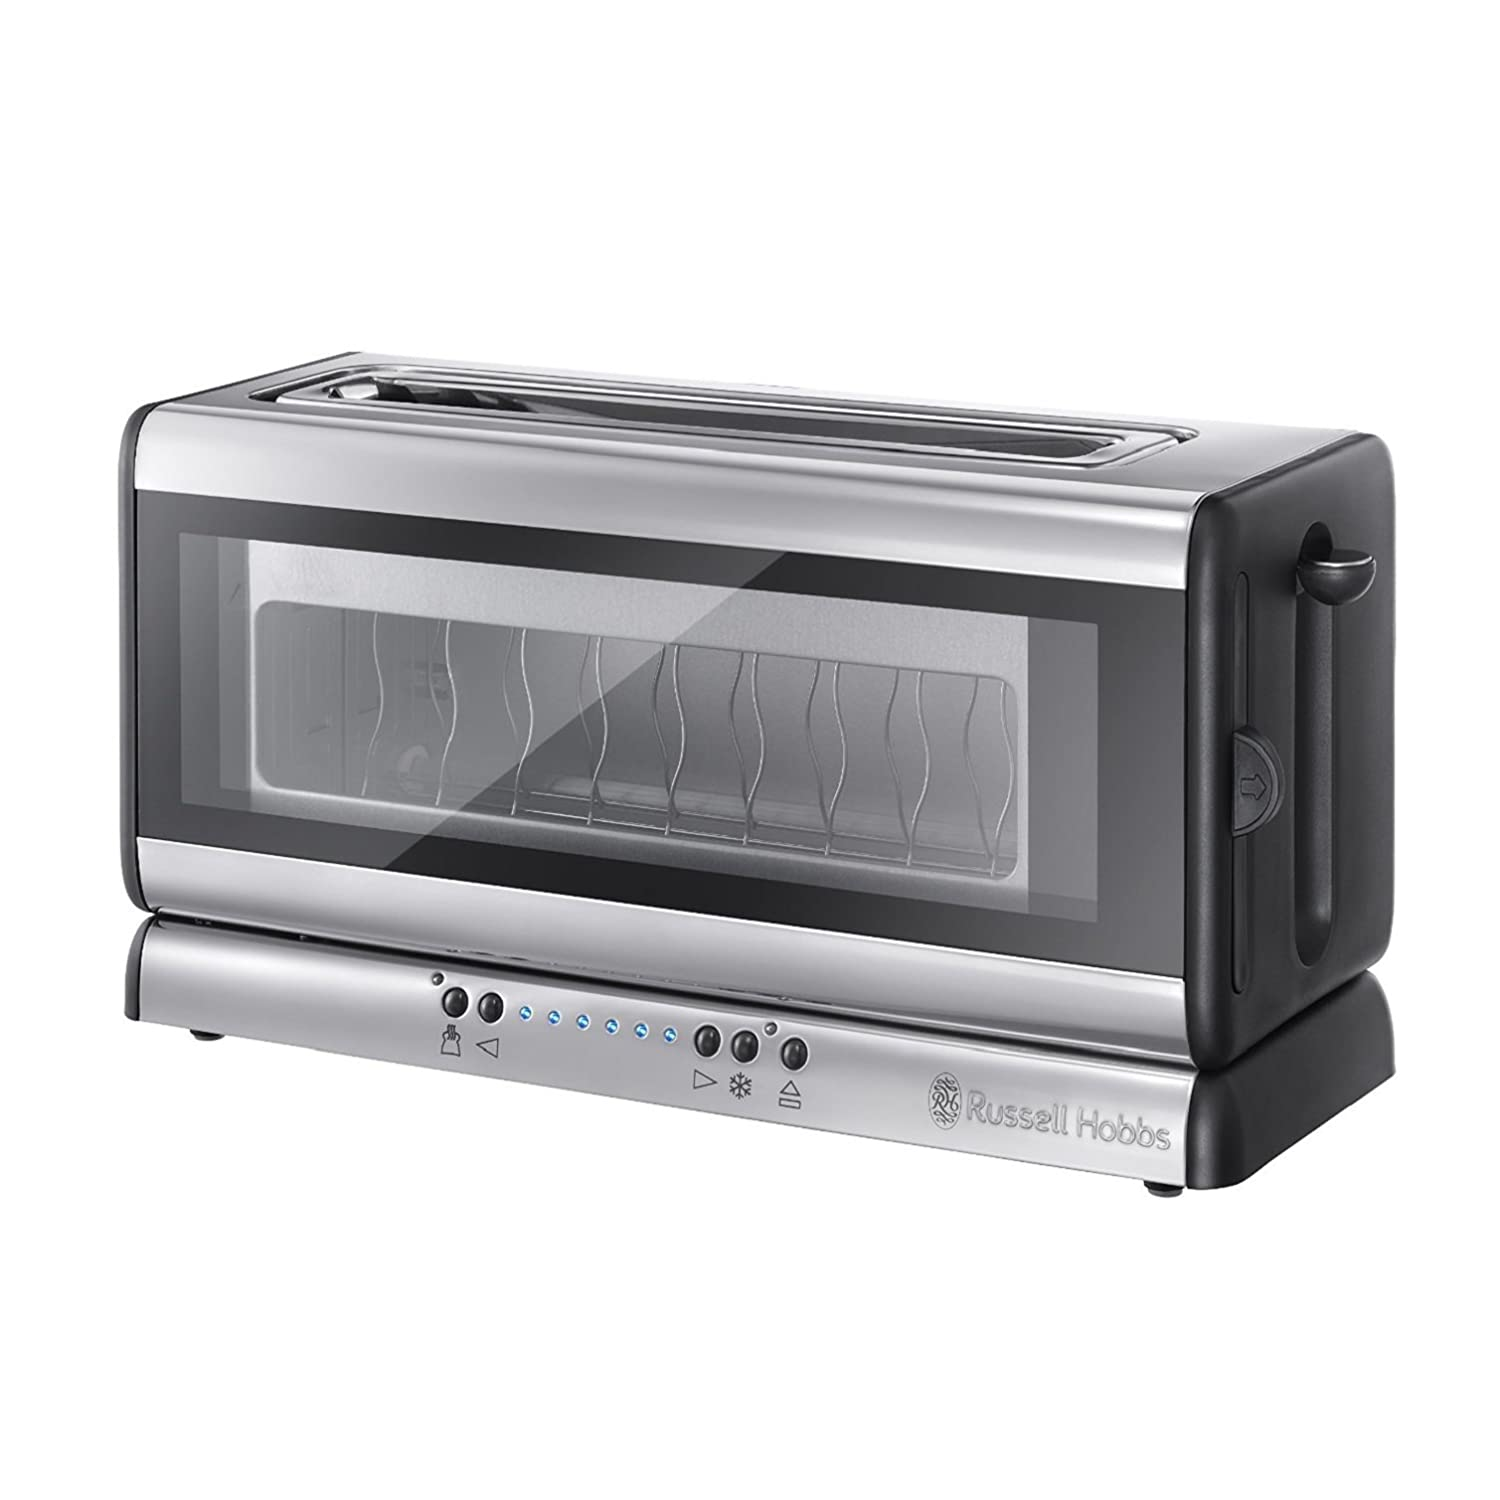 Russell Hobbs Glass Line 2-Slice Toaster 21310